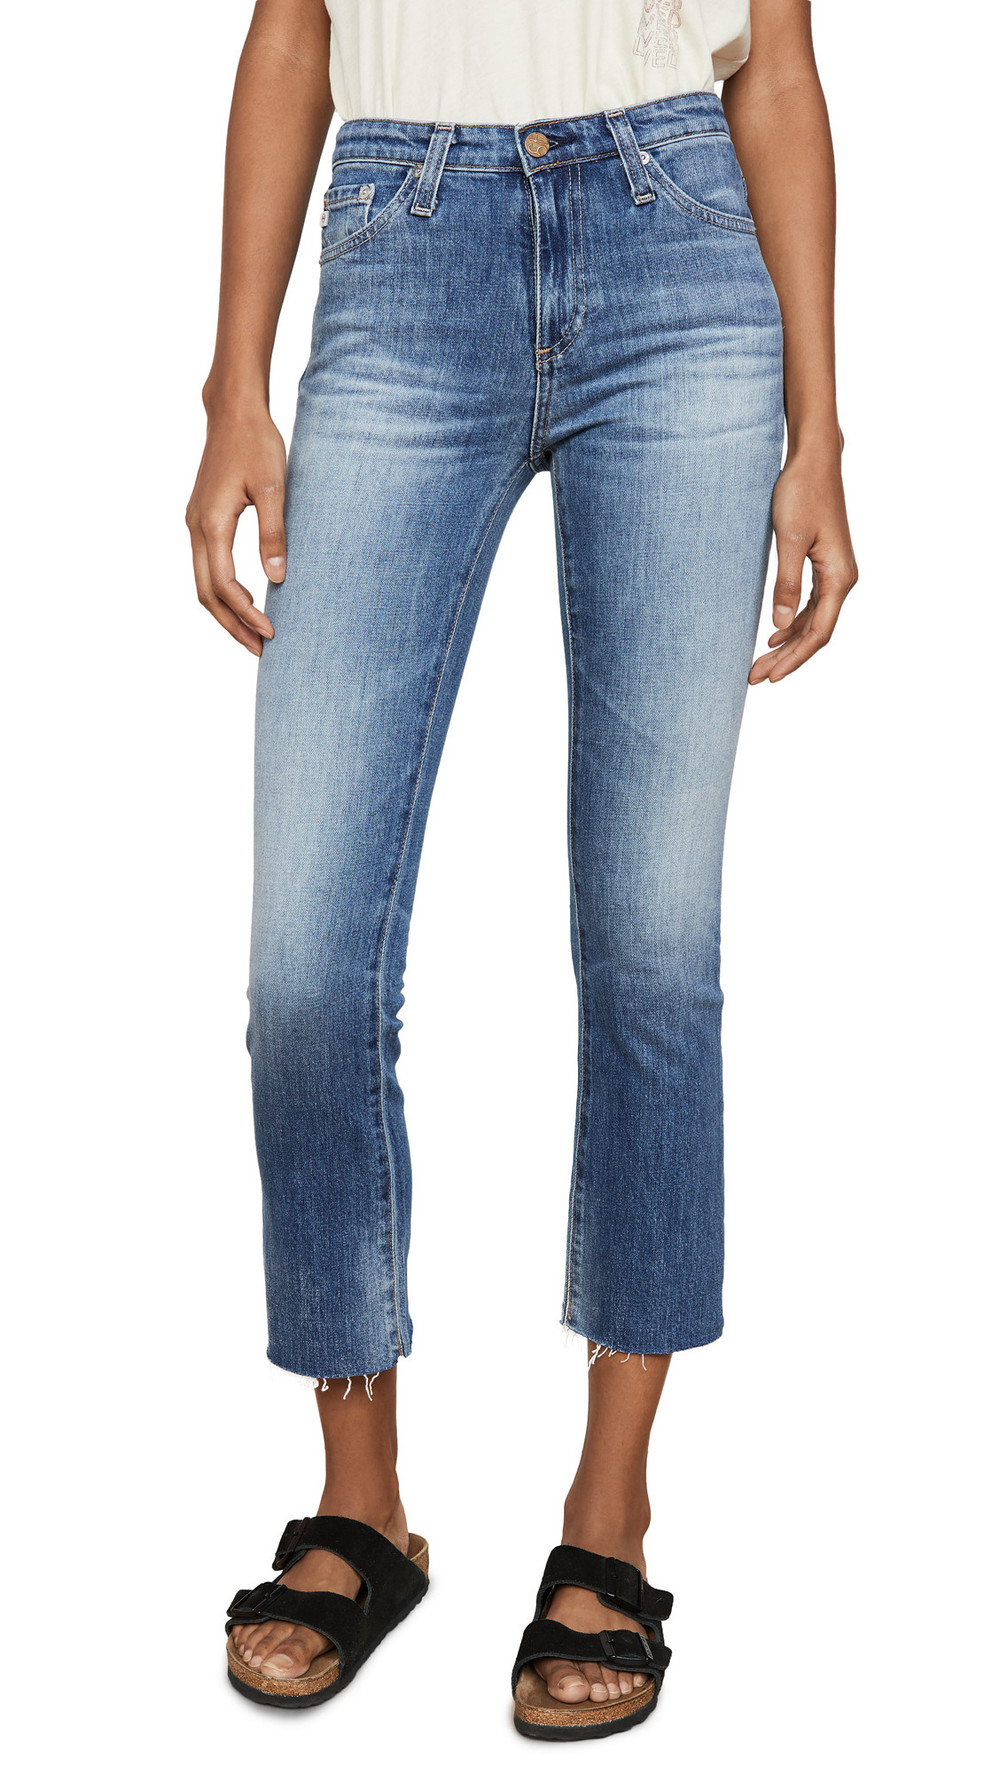 AG The Jodi Slim Flare Crop Jeans in blue